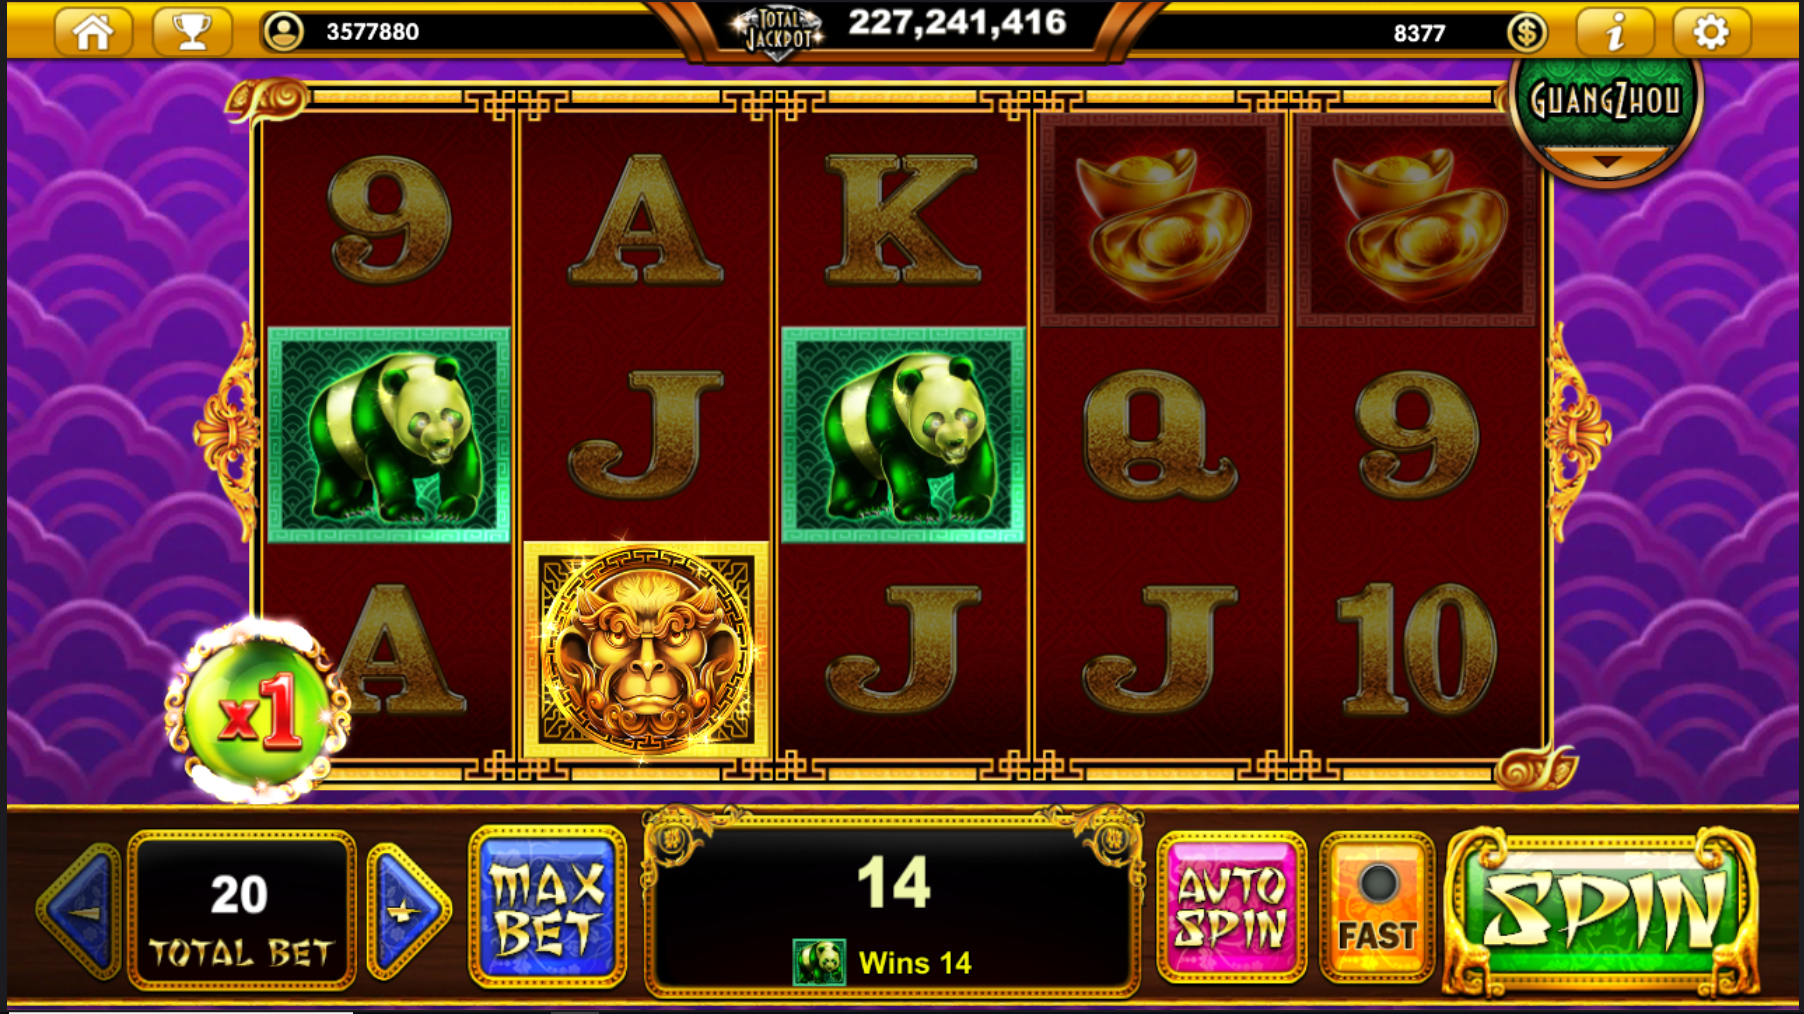 Live22- Live casino games and slot games